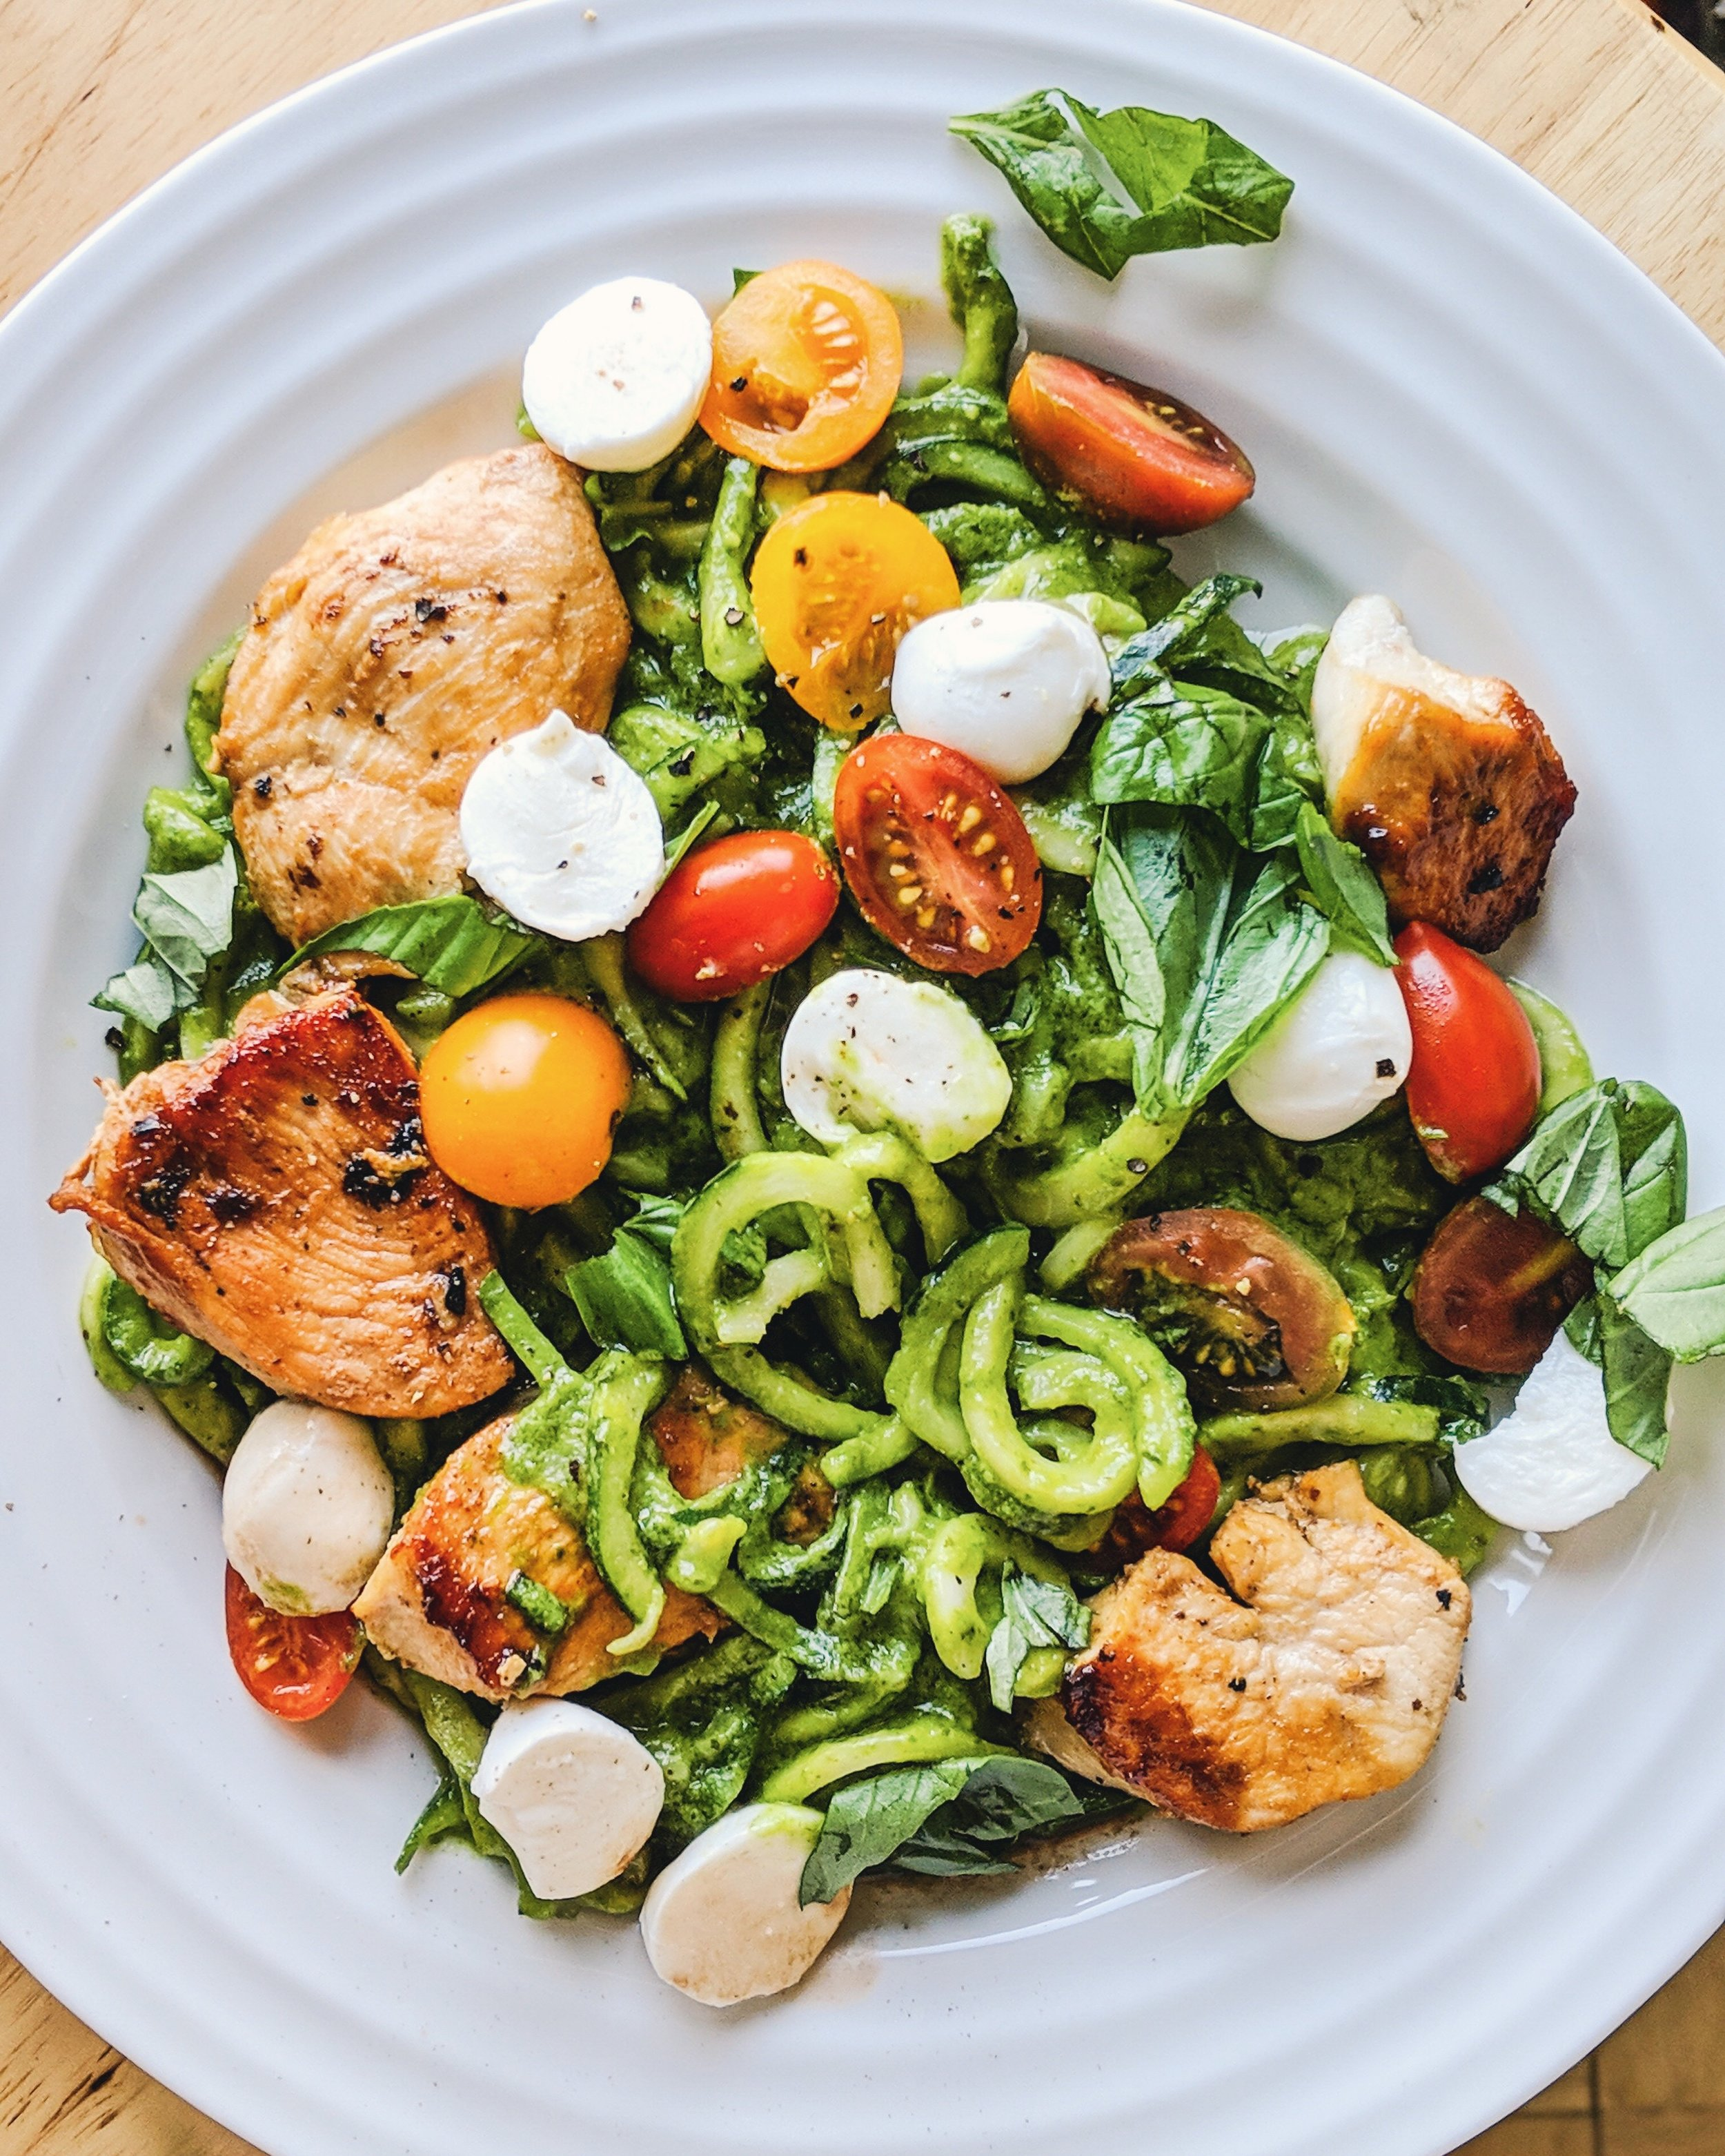 Chicken Caprese Zoodles with Spinach Avocado Pesto - A light and nutritious way to eat your favorite caprese salad. Sweet cherry tomatoes and ciliegine mozzarella with fresh basil, on top of a bed of creamy avocado pesto zucchini noodles with seared garlic chicken.